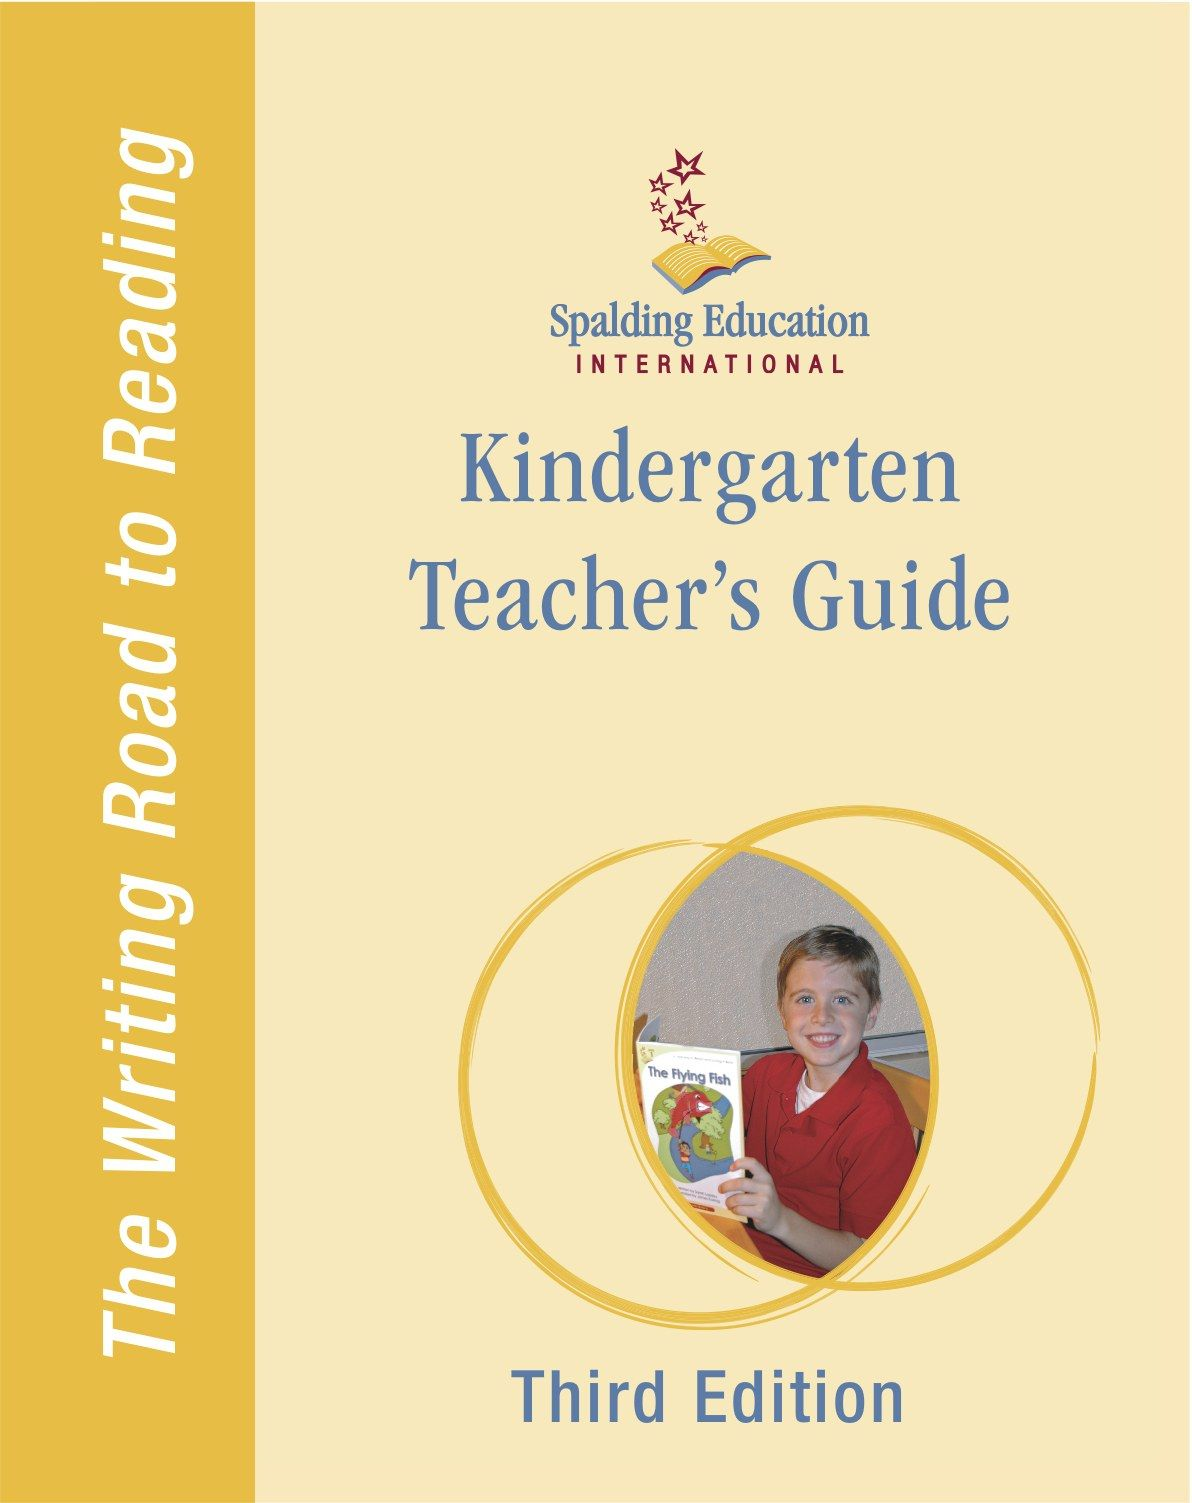 Here S Our Updated Kindergarten Teacher S Guide To Be Released